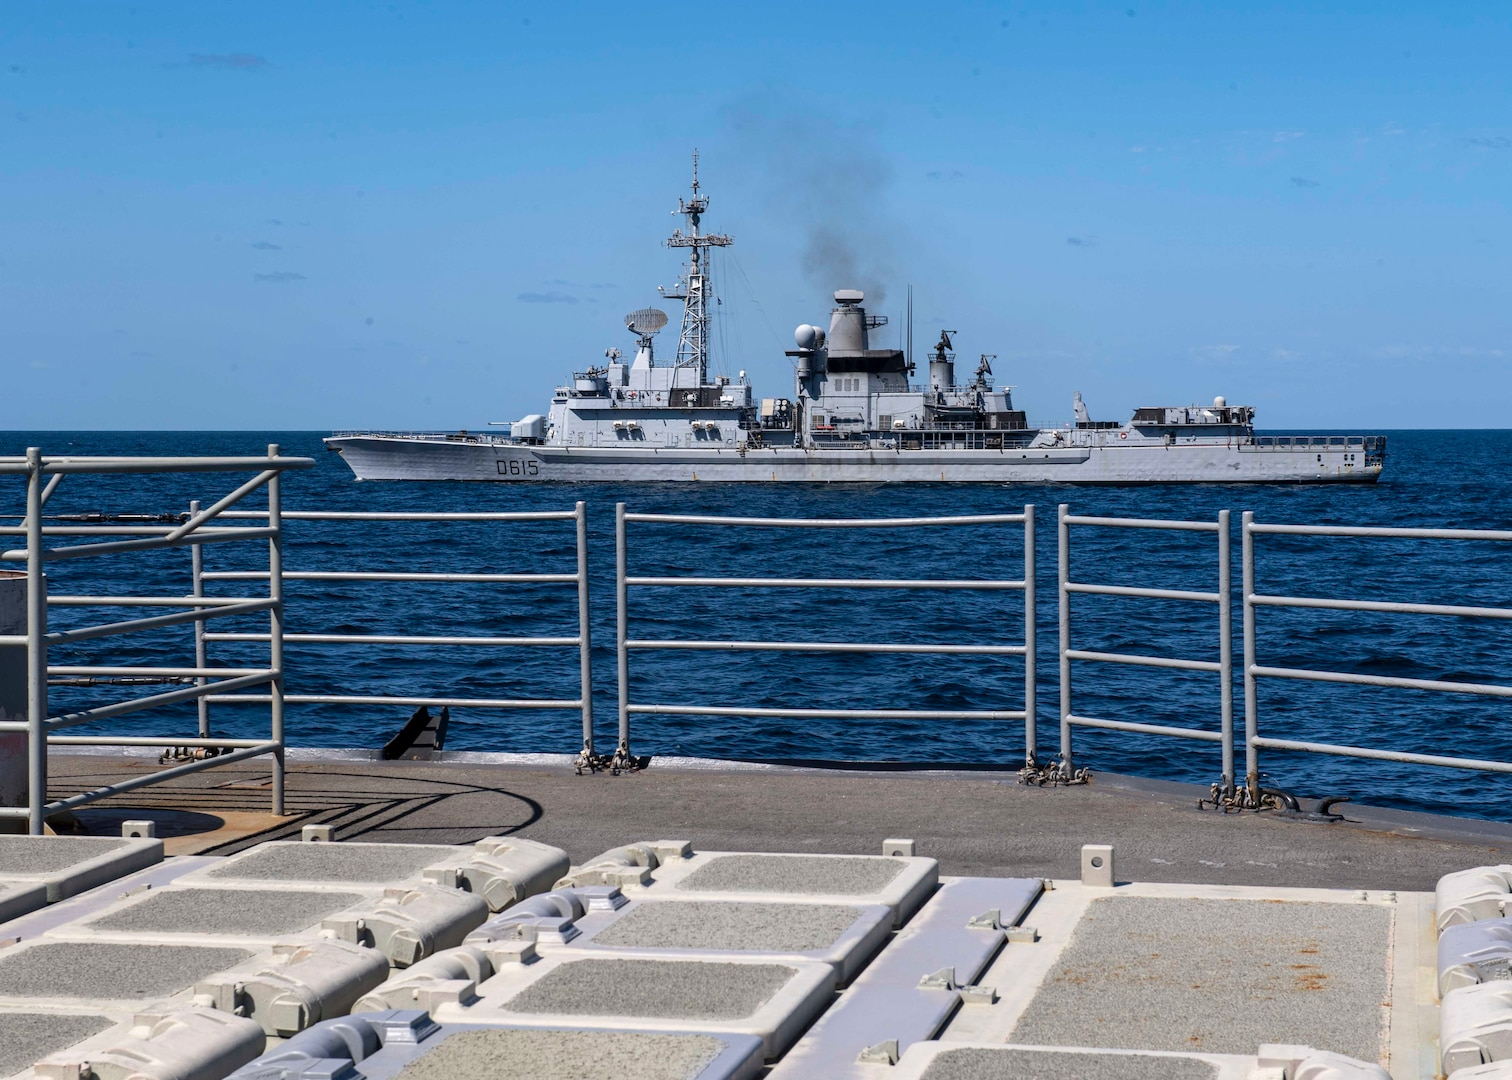 The French Navy ship Jean Bart transits alongside the guided-missile cruiser USS Normandy (CG 60) during International Maritime Exercise 2019 (IMX 19). The exercise is a multinational engagement involving partners and allies from around the world designed to facilitate the sharing of knowledge and experiences across the full spectrum of defensive maritime operations. IMX 19 serves to demonstrate the global resolve in maintaining regional security and stability, freedom of navigation and the free flow of commerce from the Suez Canal south to the Bab el-Mandeb Strait through the Strait of Hormuz to the Northern Arabian Gulf. (U.S. Navy photo by Mass Communication Specialist 2nd Class Michael H. Lehman)